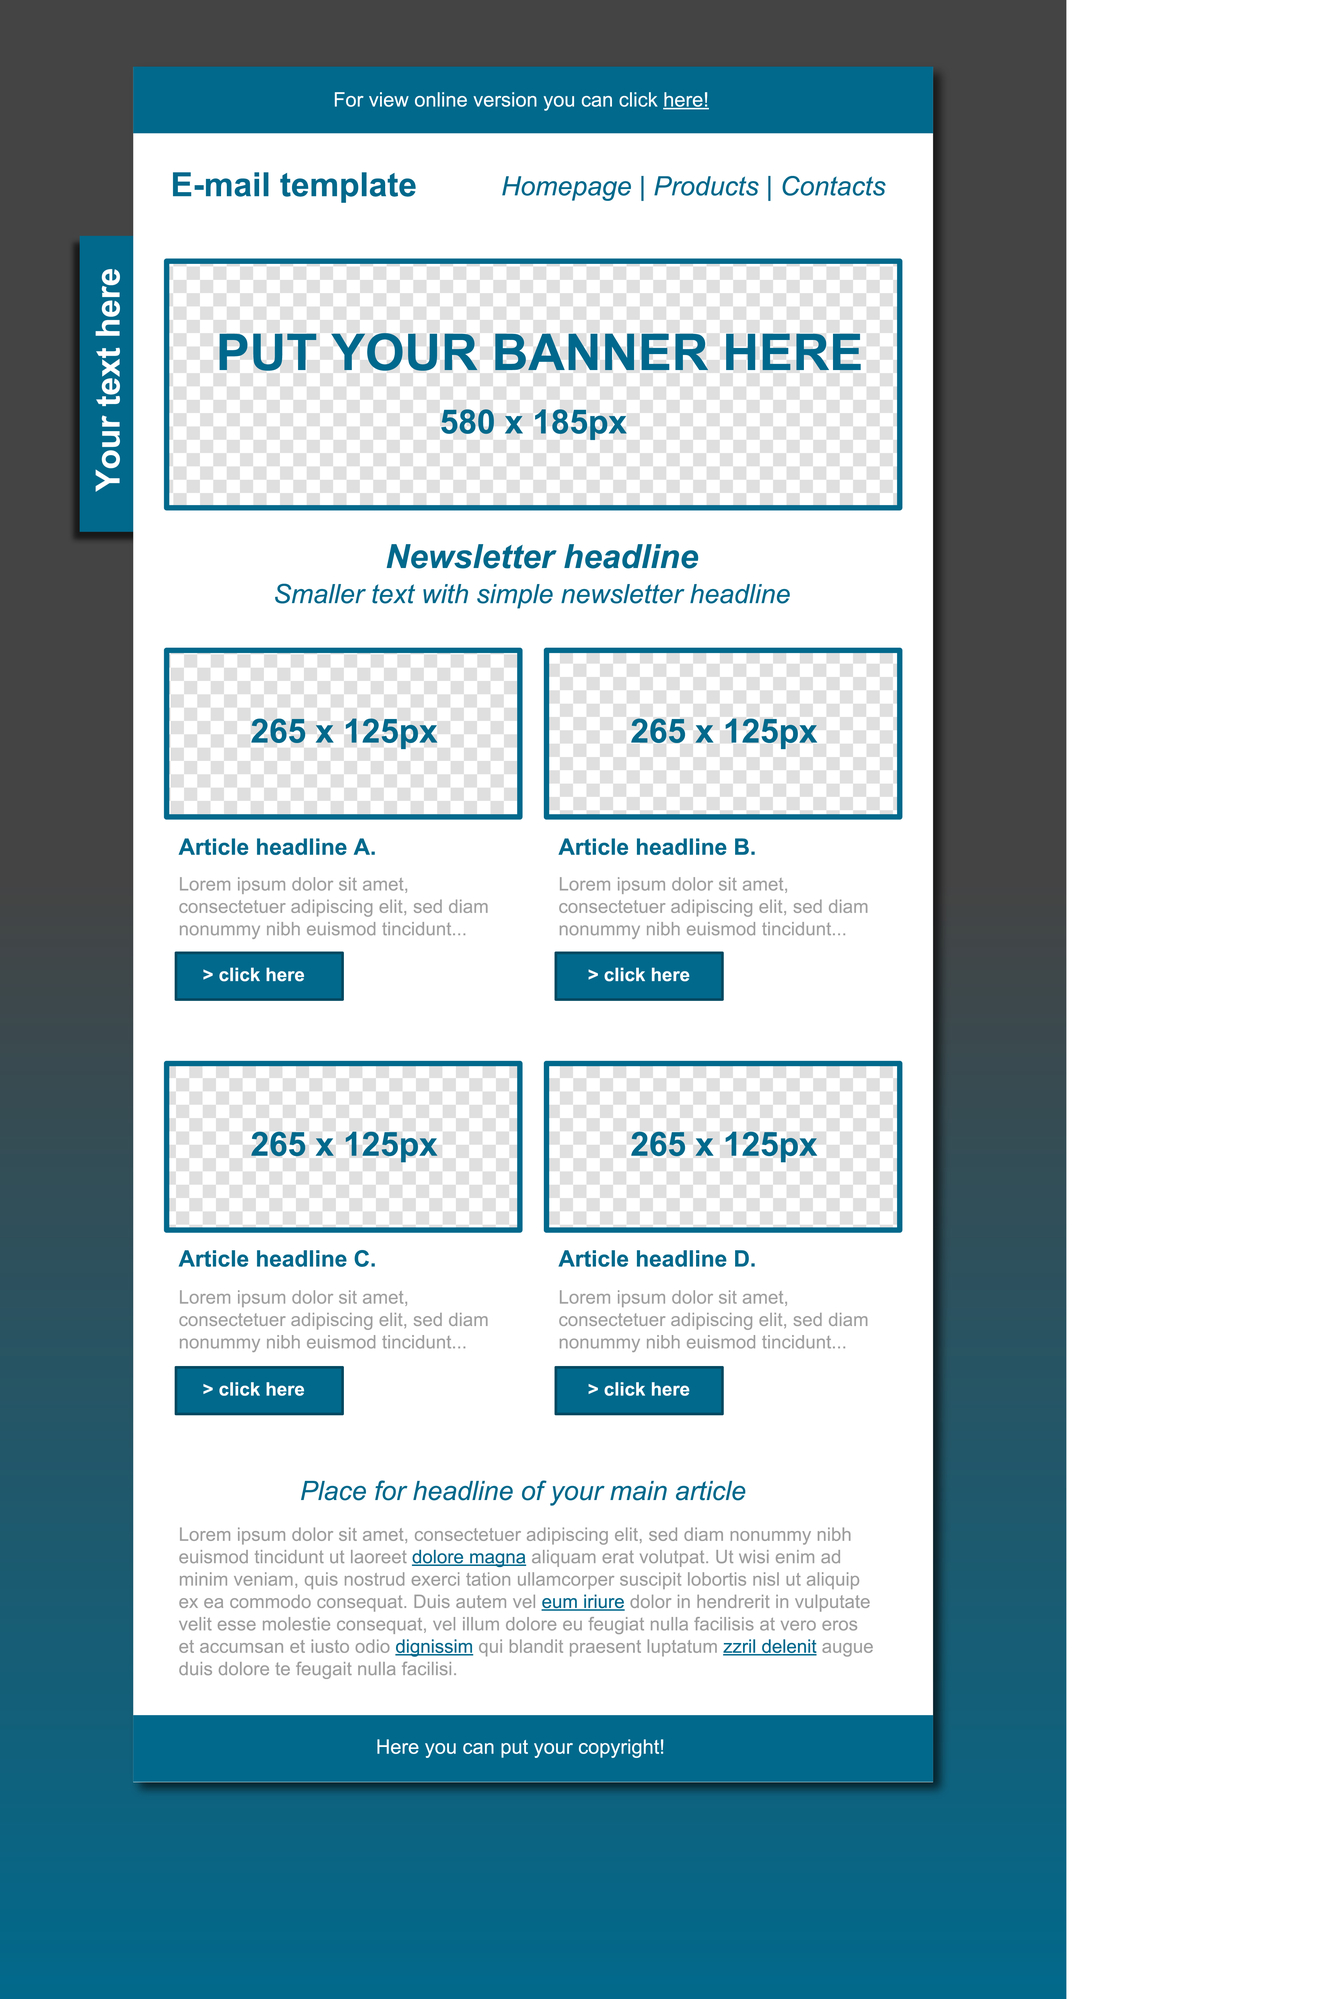 Responsive Email Template For Building An Email Newsletter For A Commercial Contracting Business